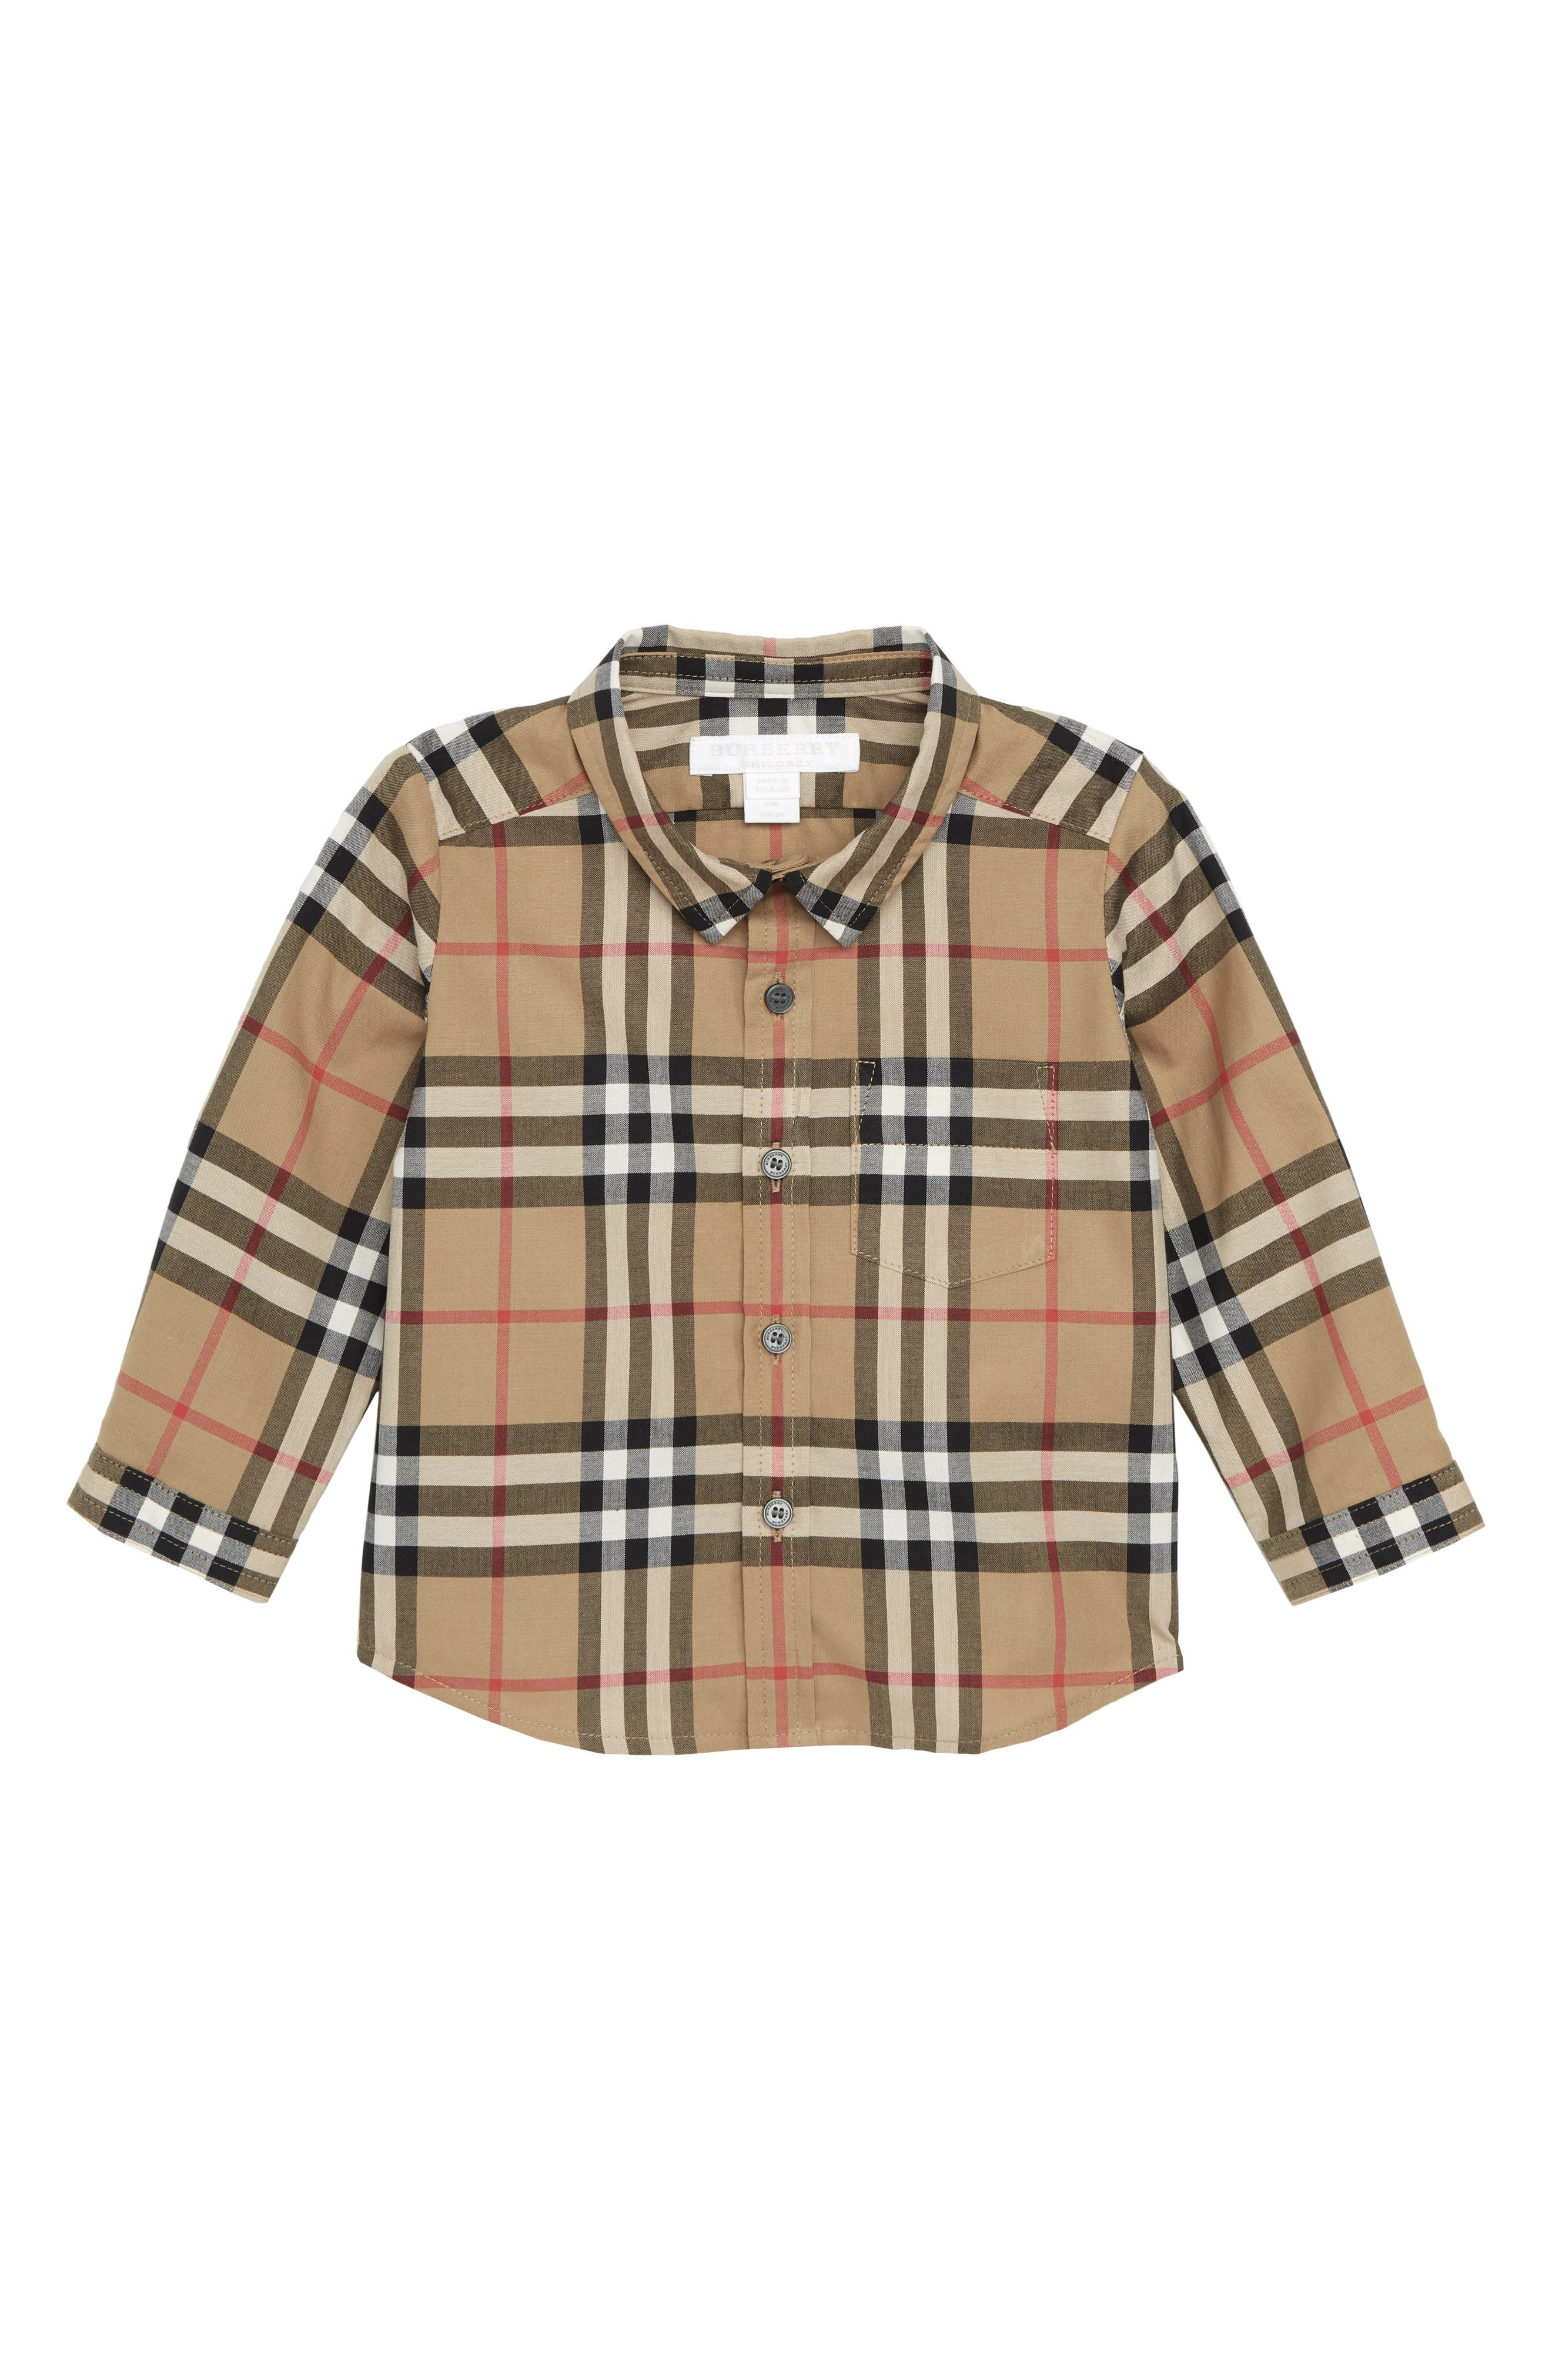 BURBERRY, Fred Plaid Shirt, Main thumbnail 1, color, ANTIQUE YELLOW